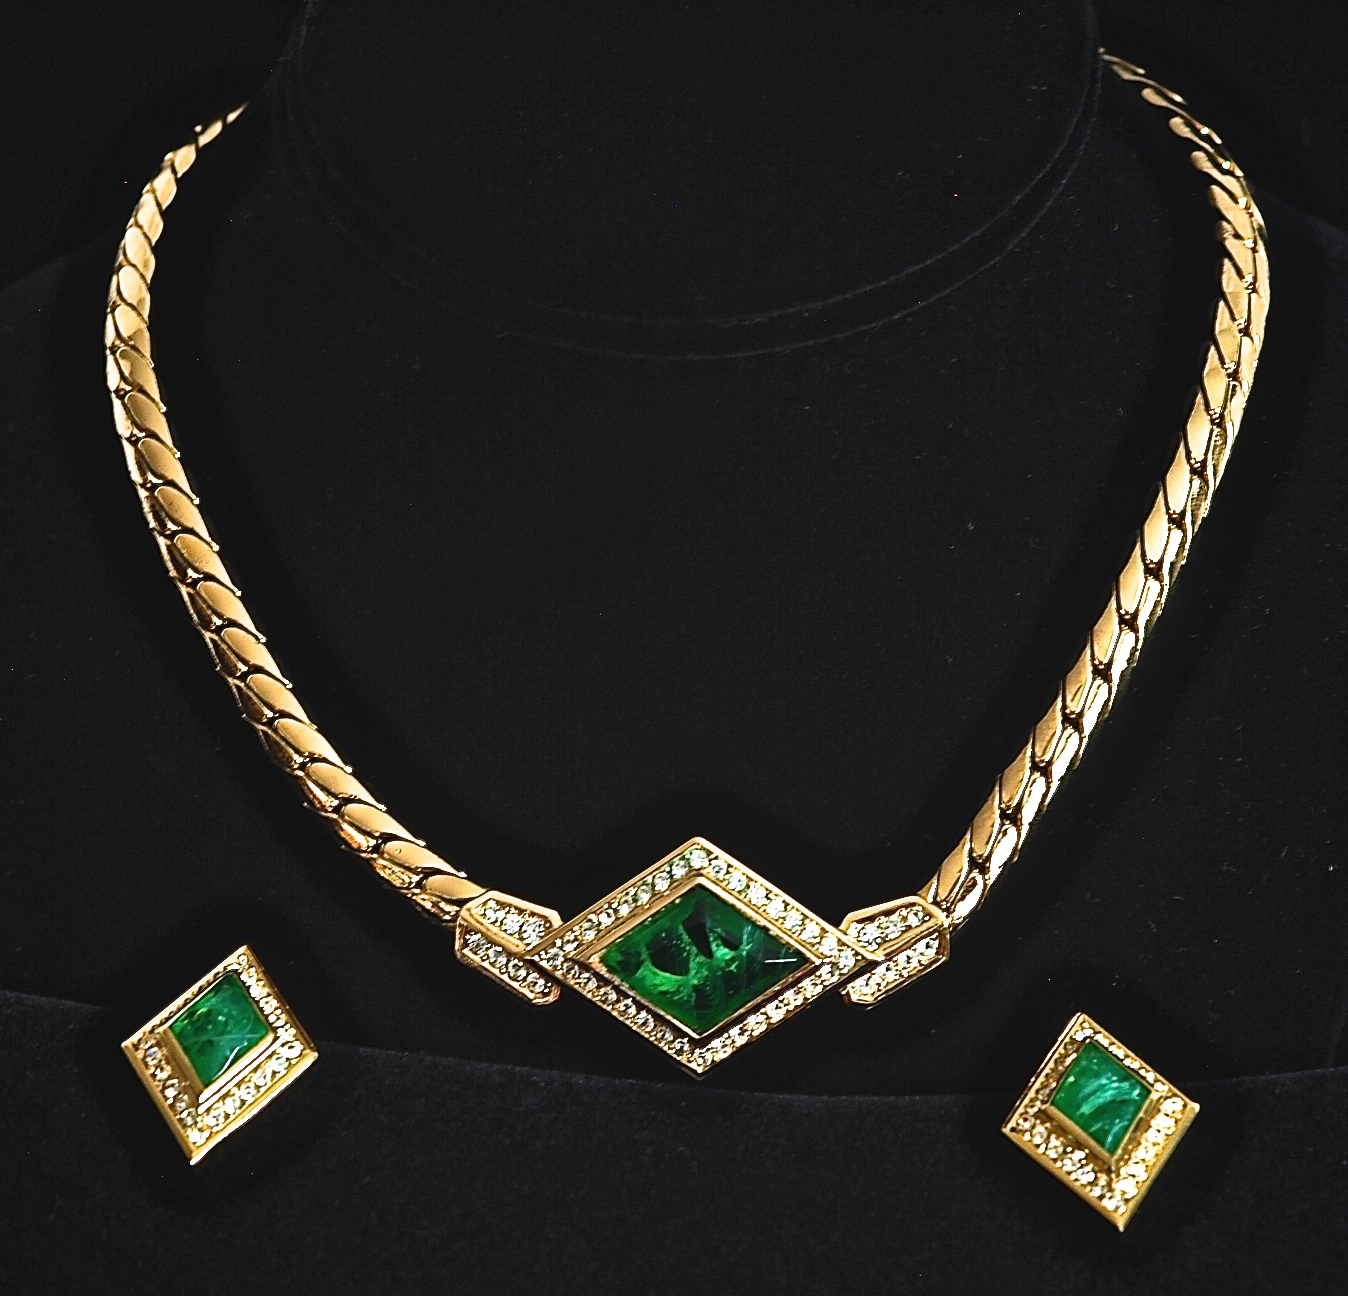 Christian Dior 1970s Necklace & Earrings Set | QUIET WEST